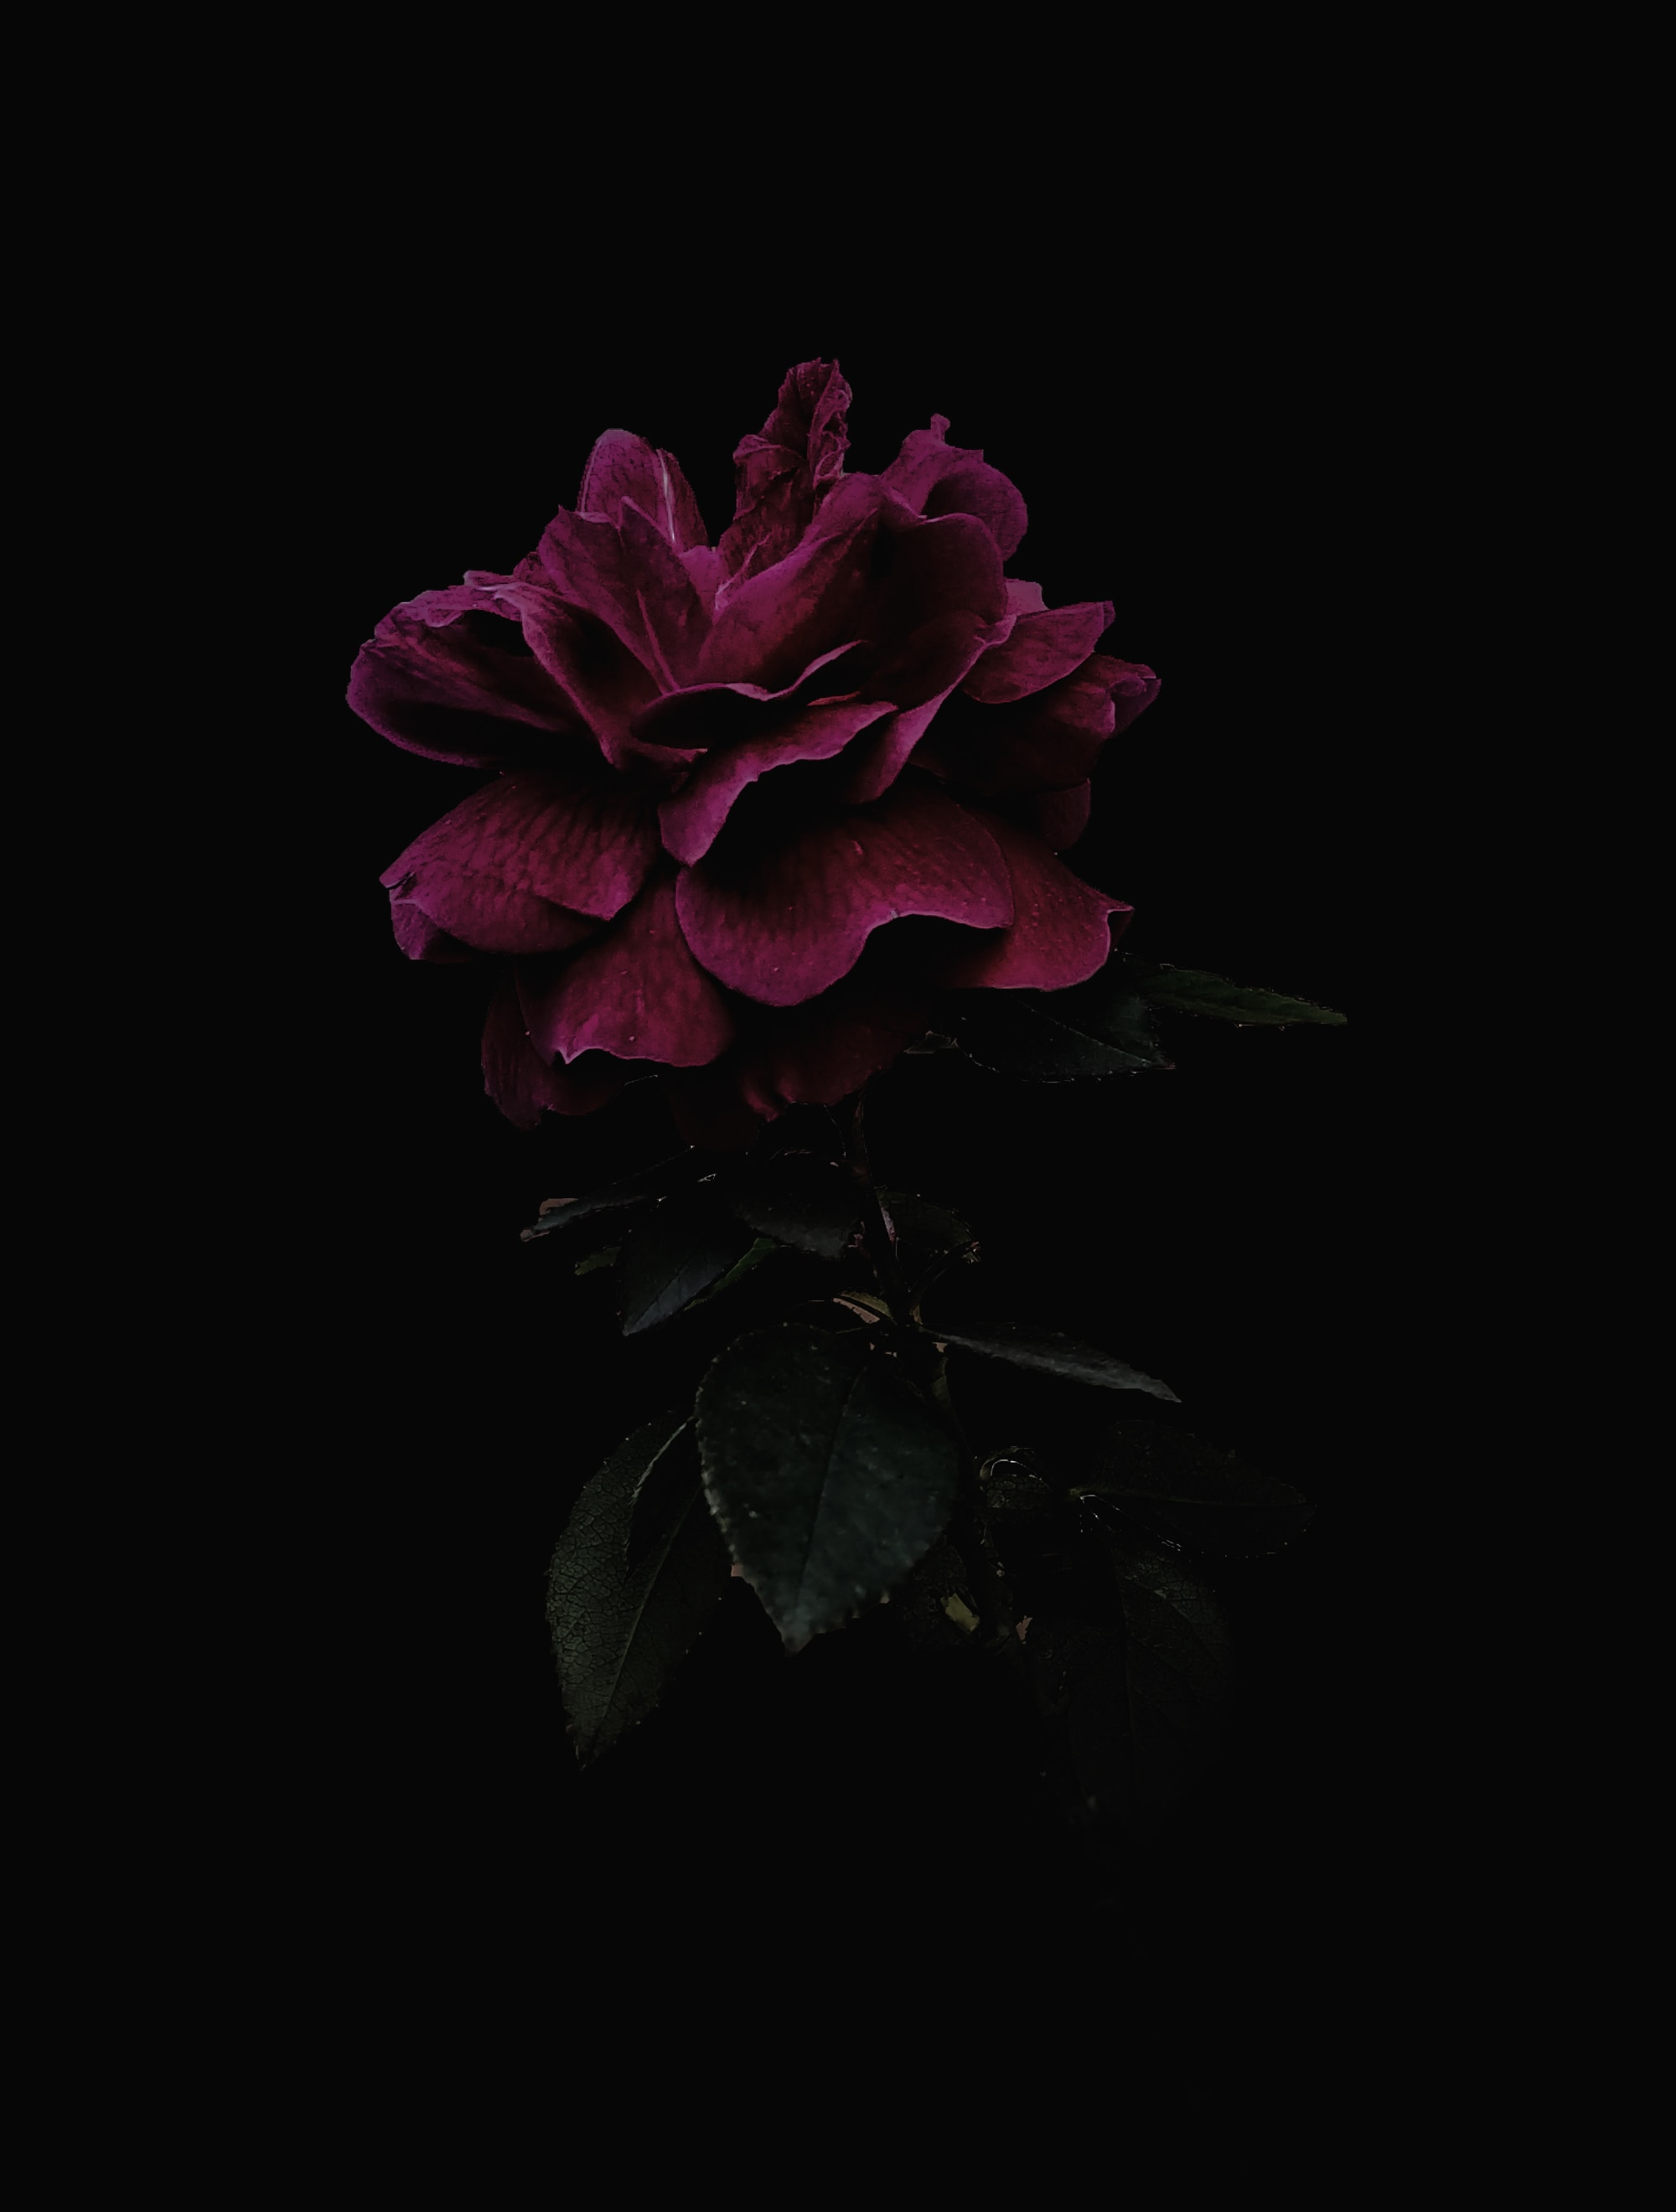 58066 download wallpaper Pink, Flower, Dark, Rose Flower, Rose screensavers and pictures for free